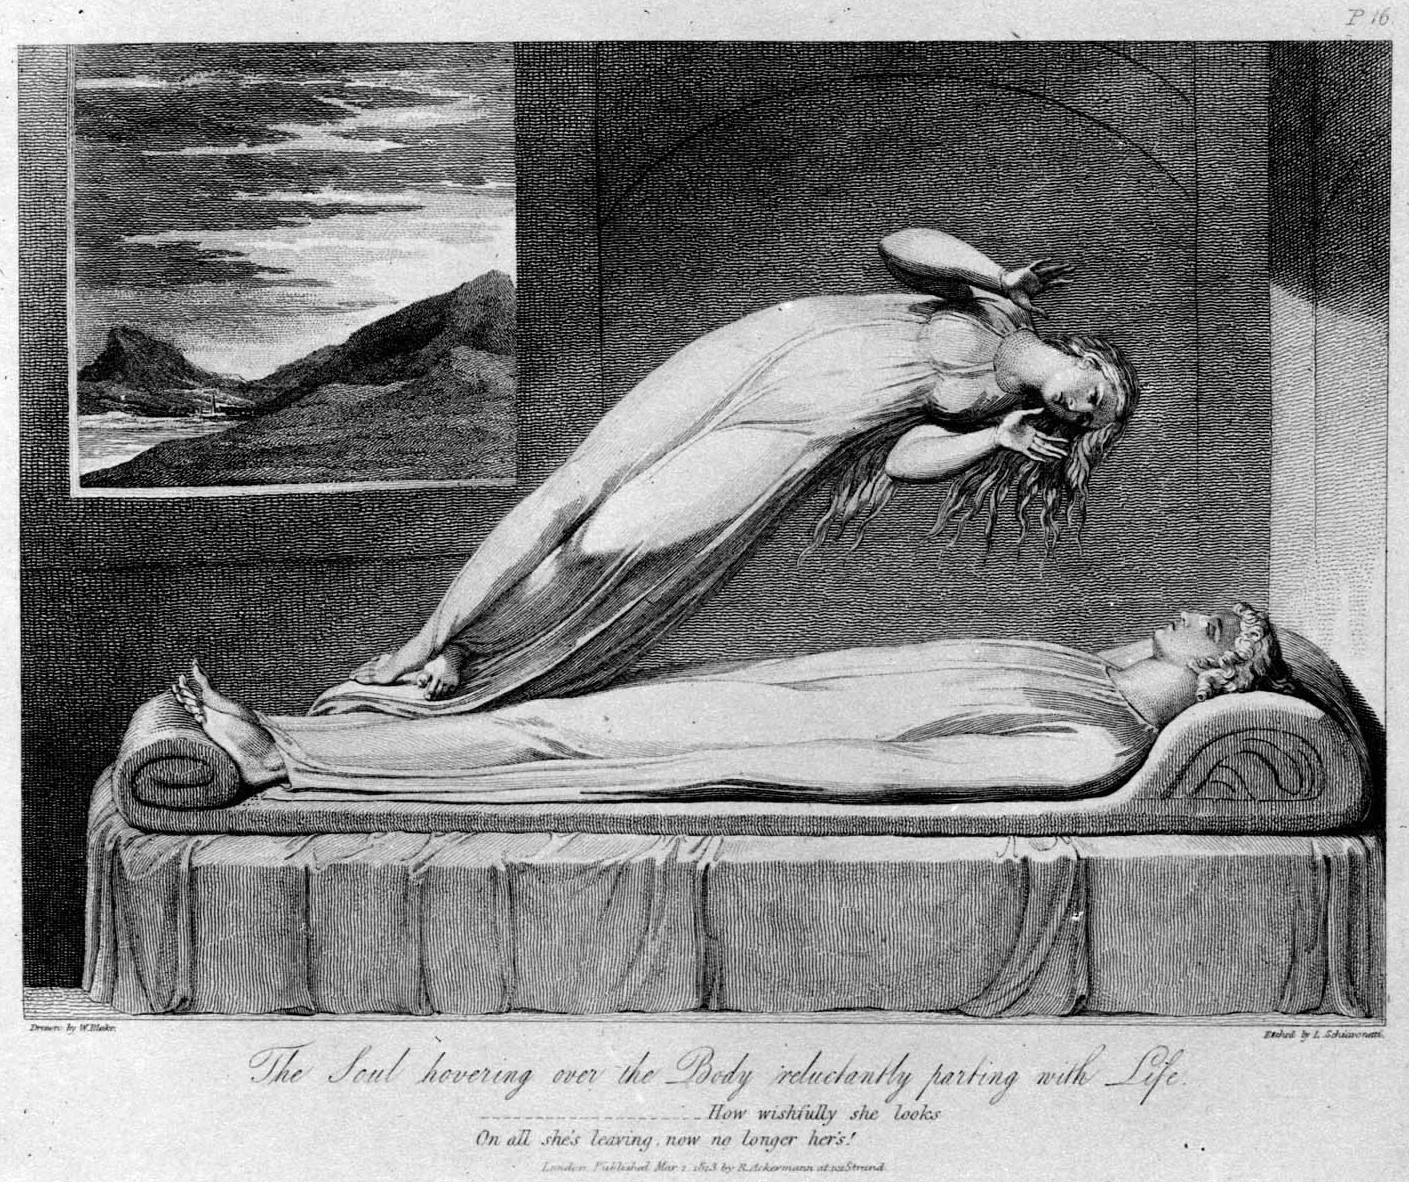 File:Schiavonetti Soul leaving body 1808.jpg